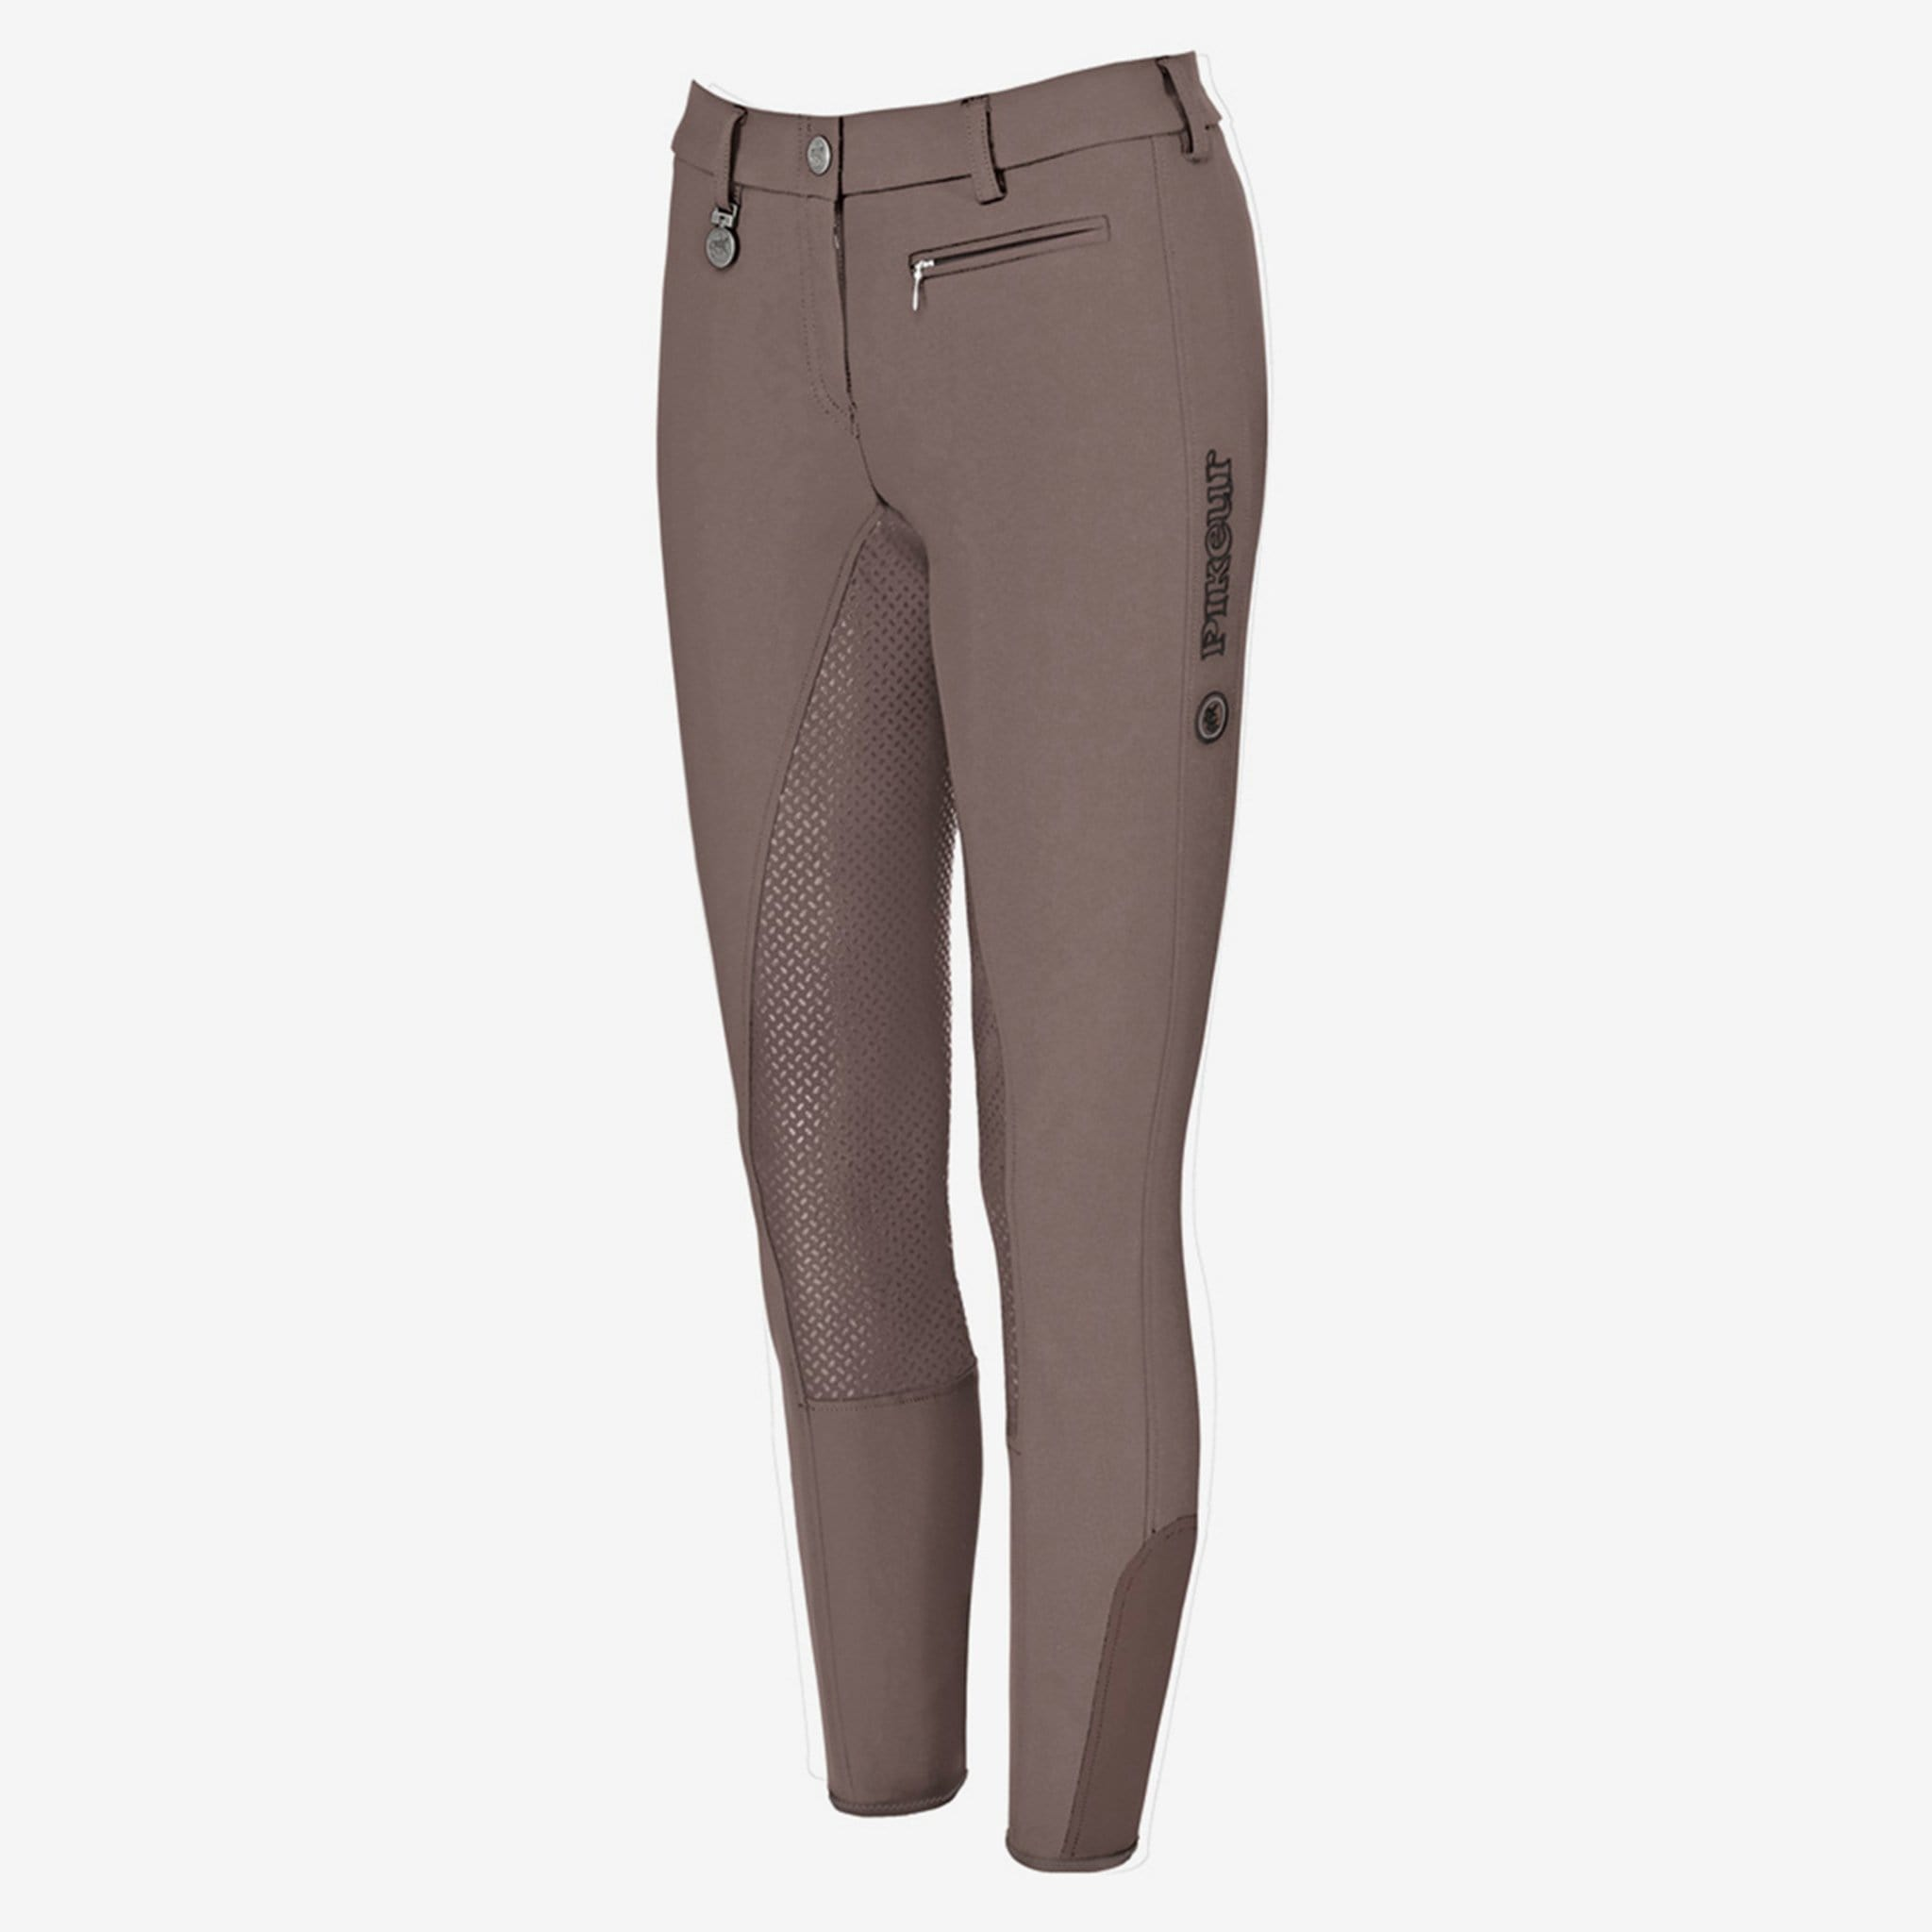 Pikeur Lucinda Grip Silicone Full Seat Breeches - Truffle - UK 8